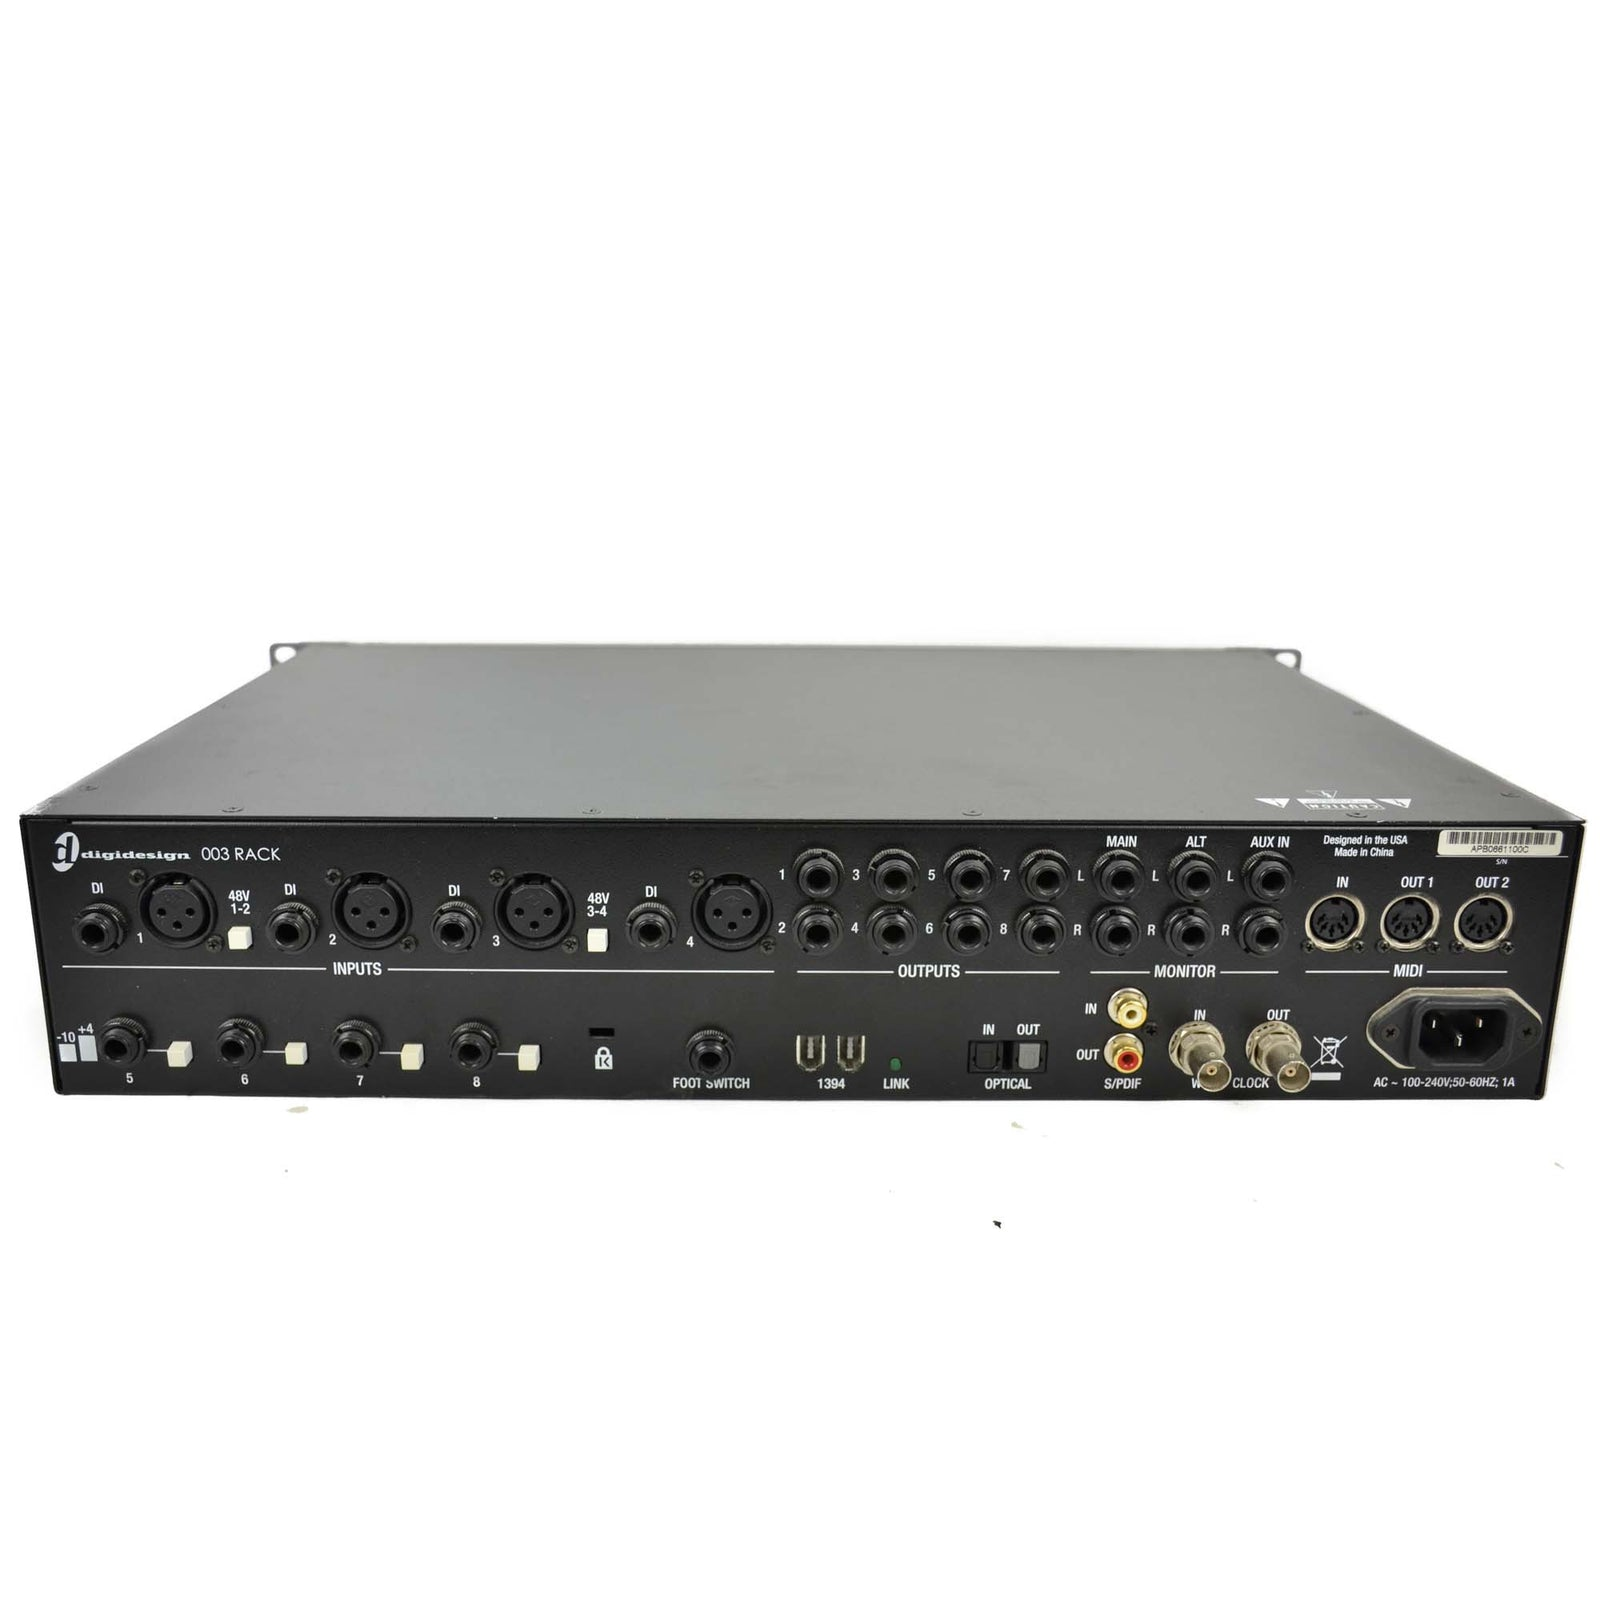 Used Digidesign 003 Rack Firewire Audio Interface